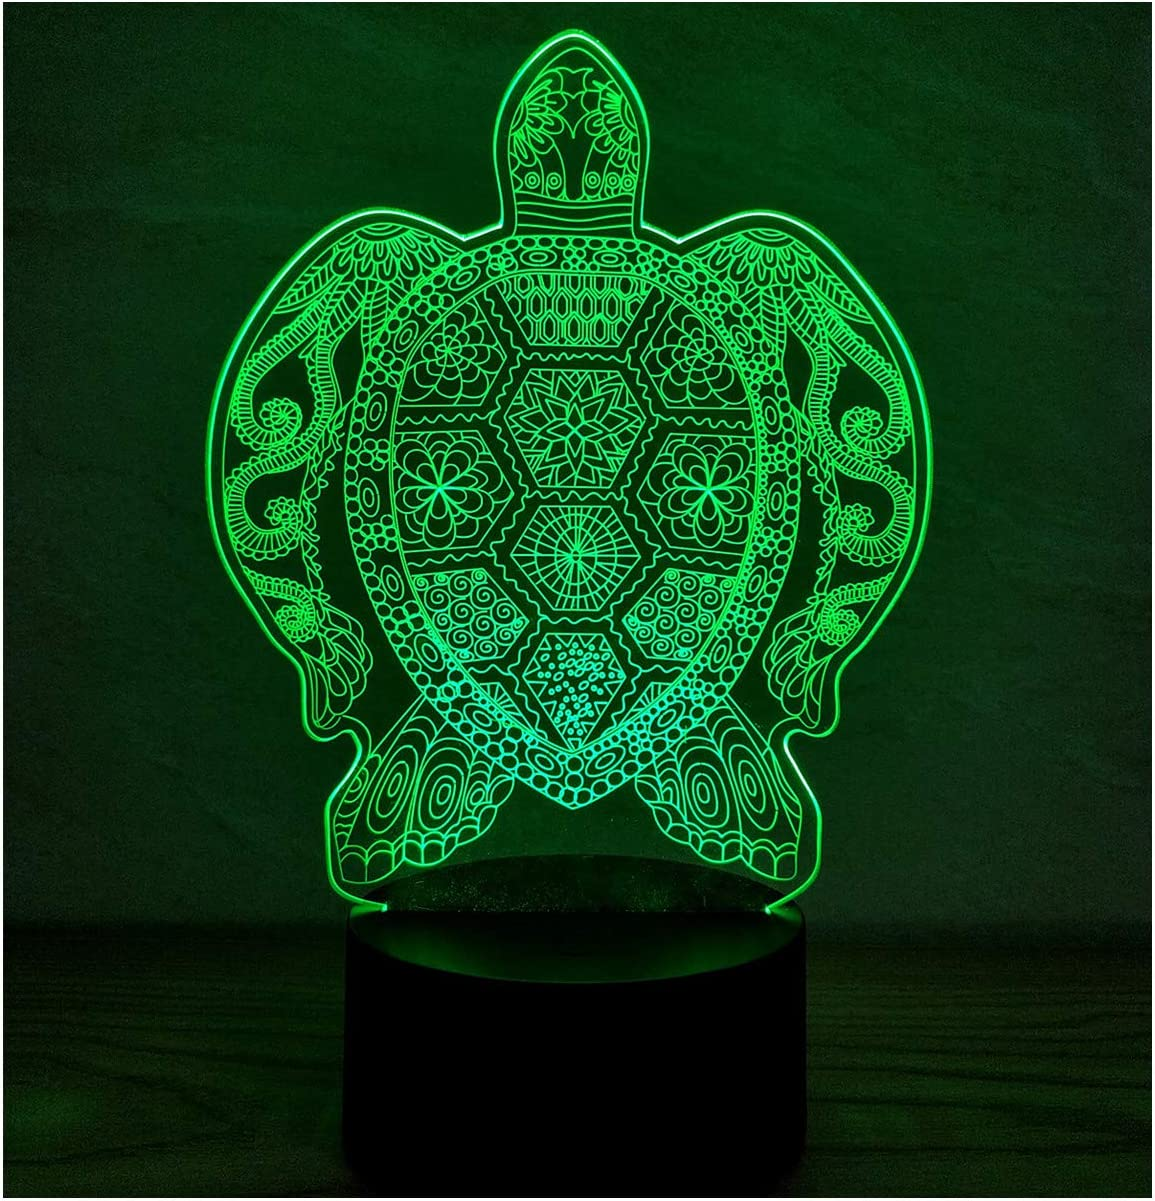 3D Illusion Platform Night Lights Touch Control 7 Color Change USB Power LED Desk Lamp for Home Decorations or Holiday Gifts (Turtle)